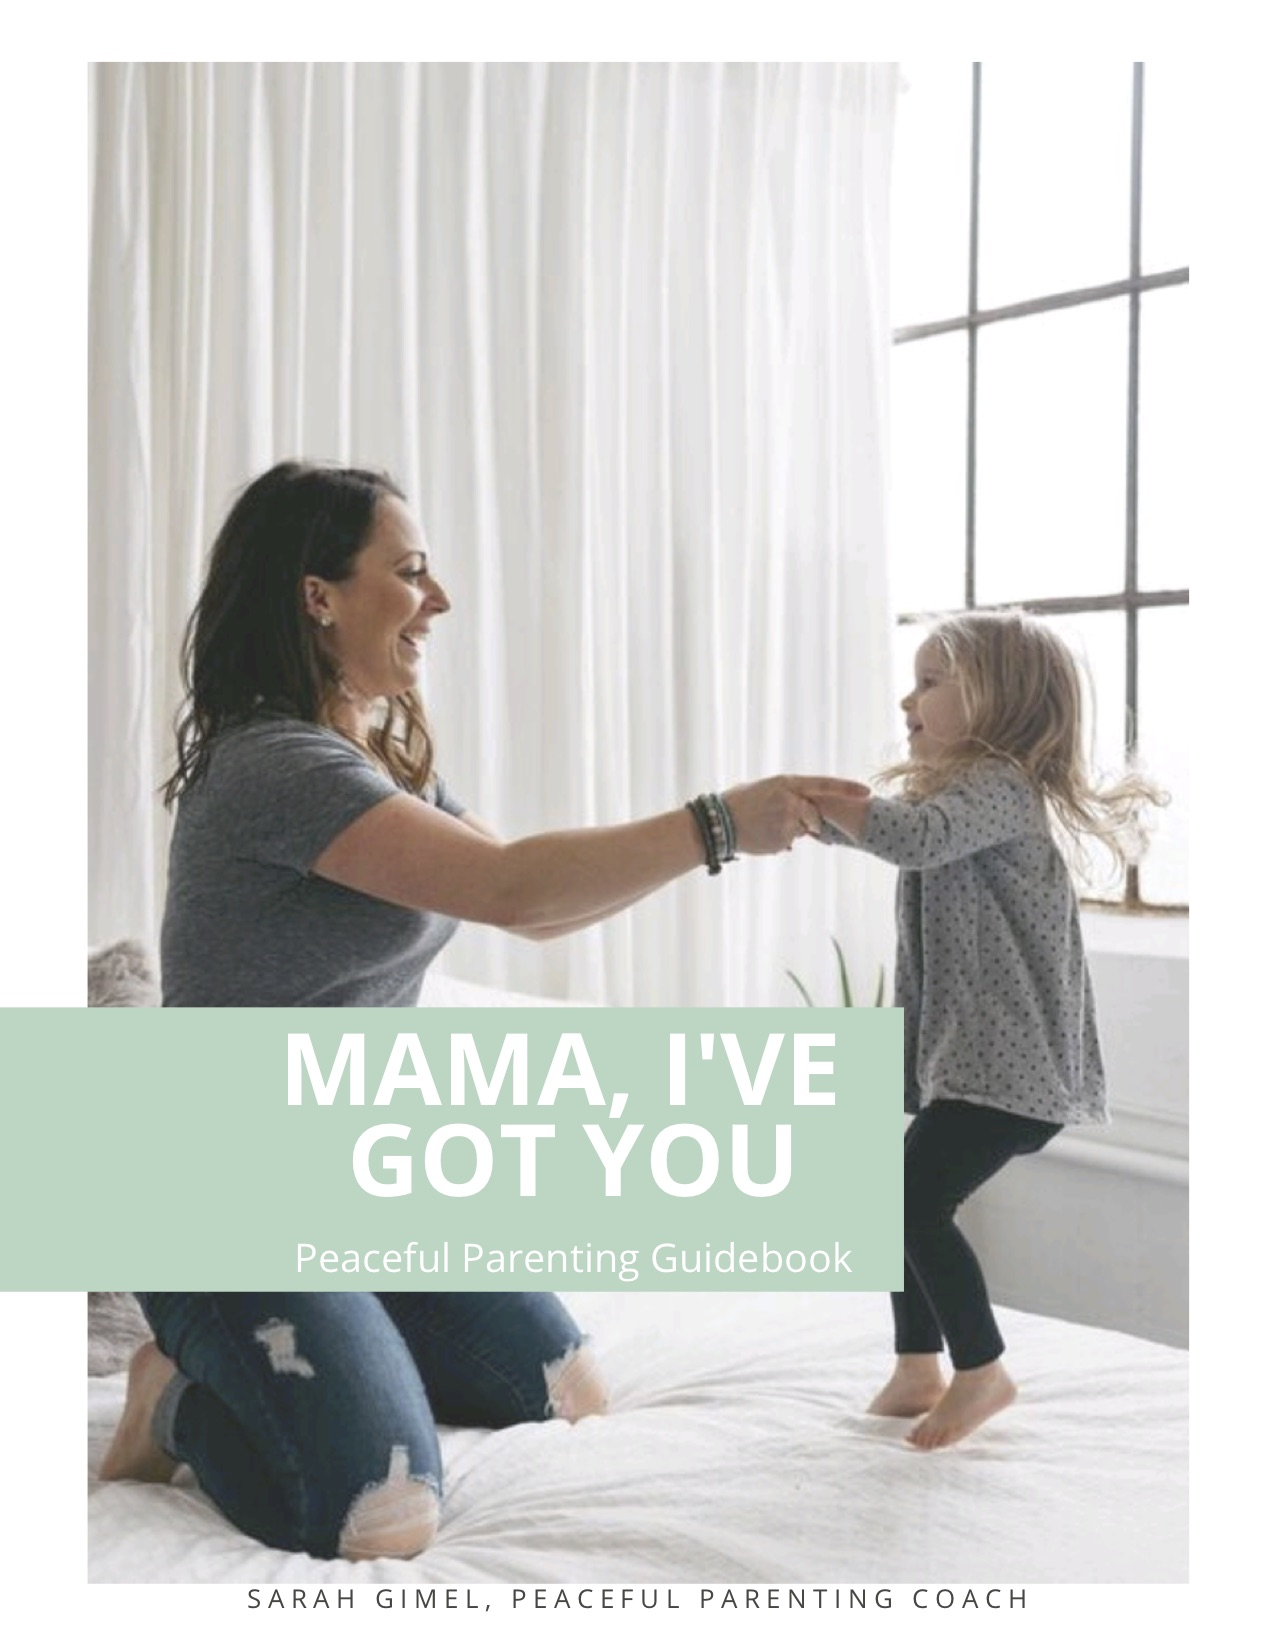 Mama, I've Got You. - PEACEFUL PARENTING GUIDEBOOKCheck it. This guidebook is full of tips, ideas, and suggestions that are based on what works and has worked for me along my journey of peaceful parenting.These tips will serve you if you…want to stop snapping at your kidswant your kids to cooperate without the fightwant to cultivate real patienceare ready to take back control of your life